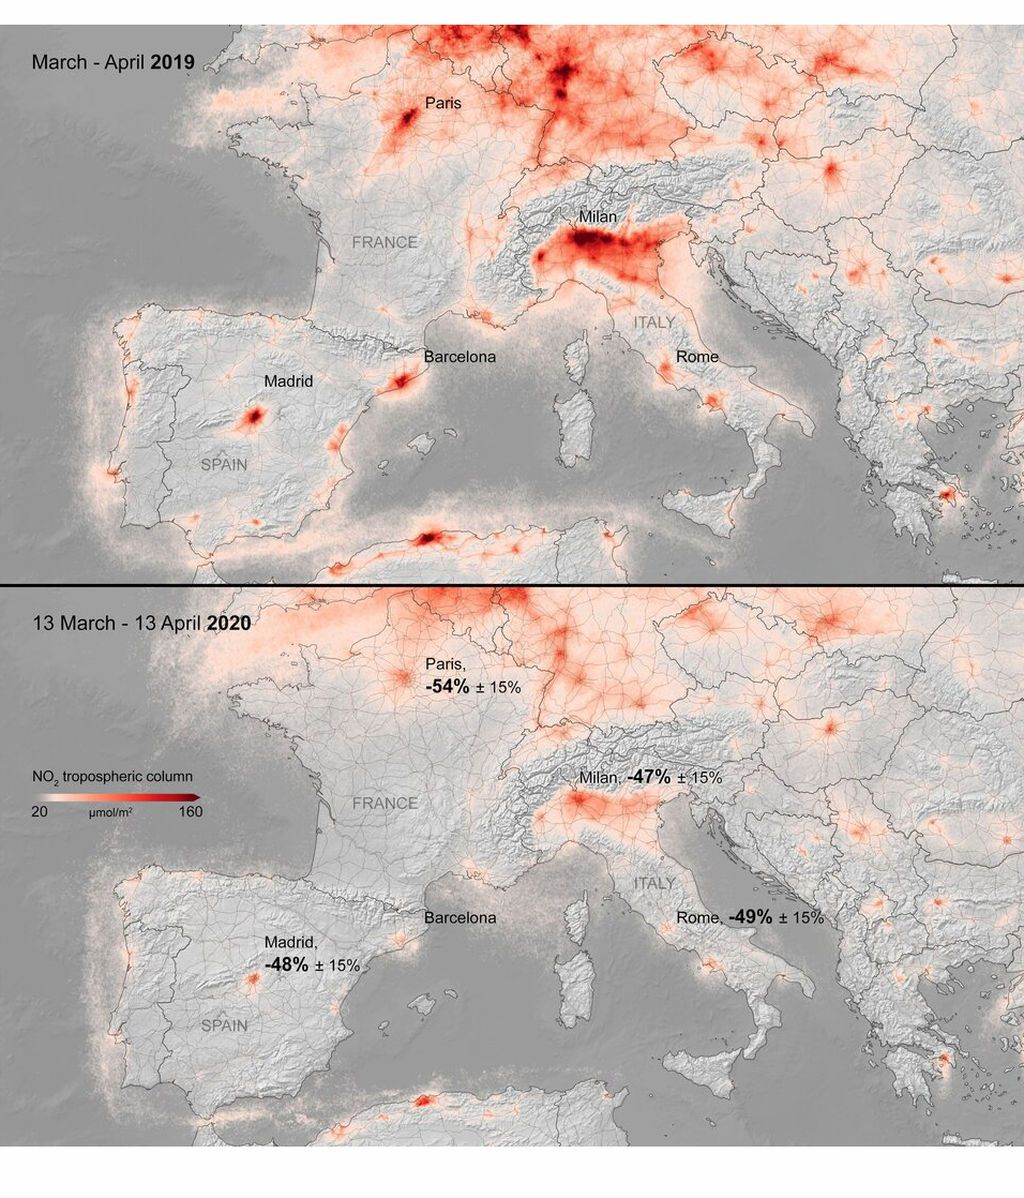 Nitrogen_dioxide_concentrations_over_Europe_article